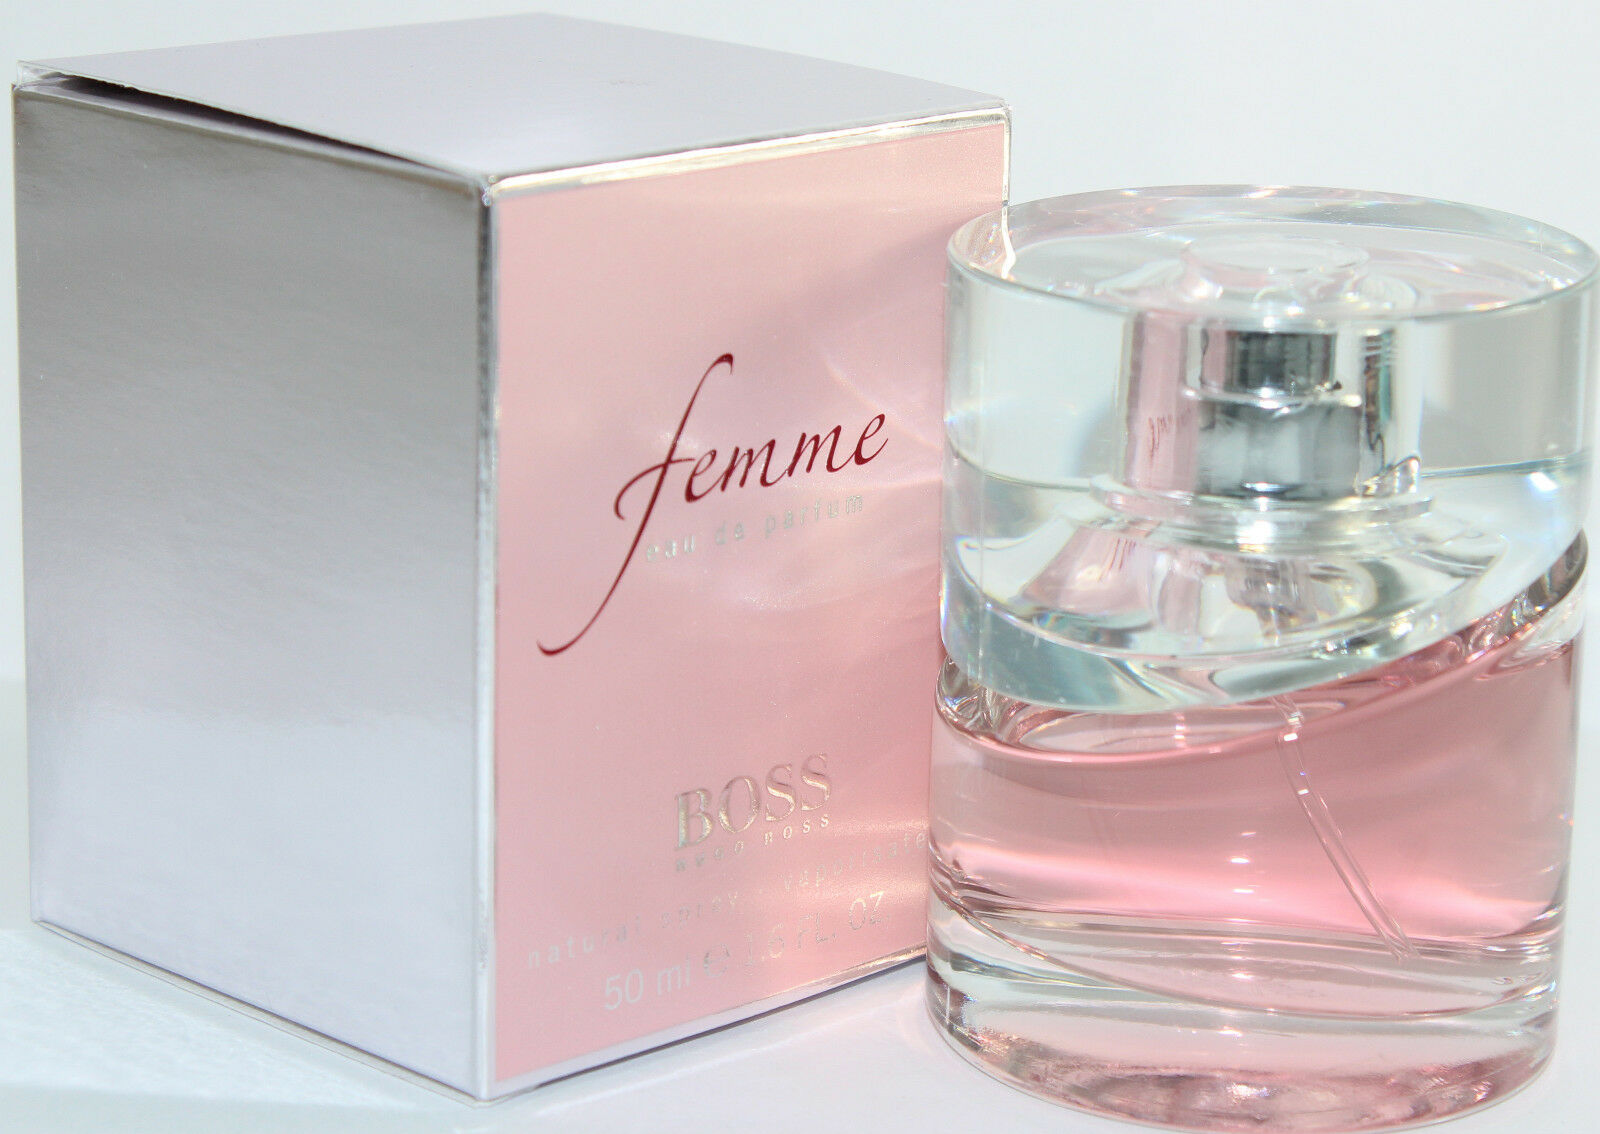 Boss Femme Edp Boss Femme By Hugo Boss 1 6 1 7 Oz Edp Spray For Women New